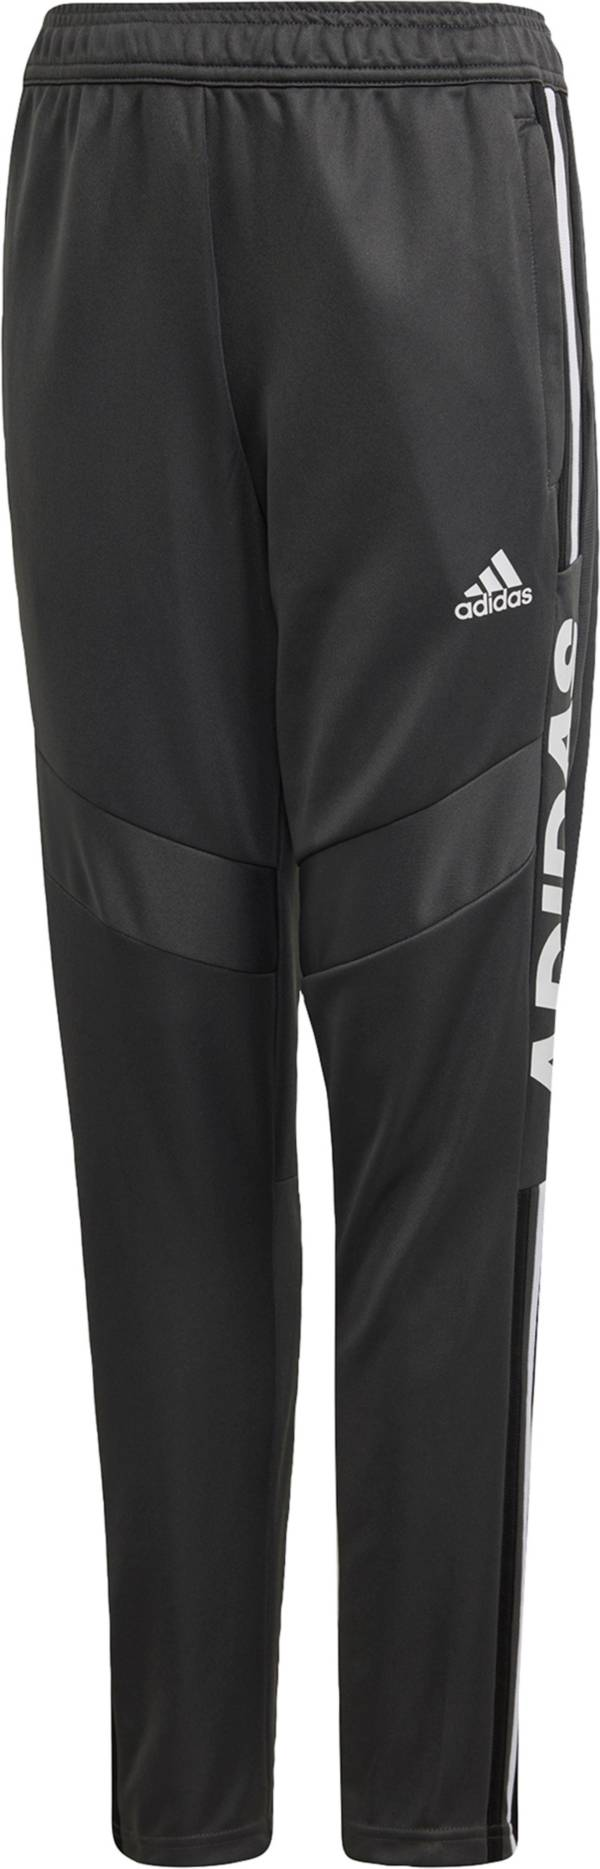 adidas Youth TIRO Training Pants product image